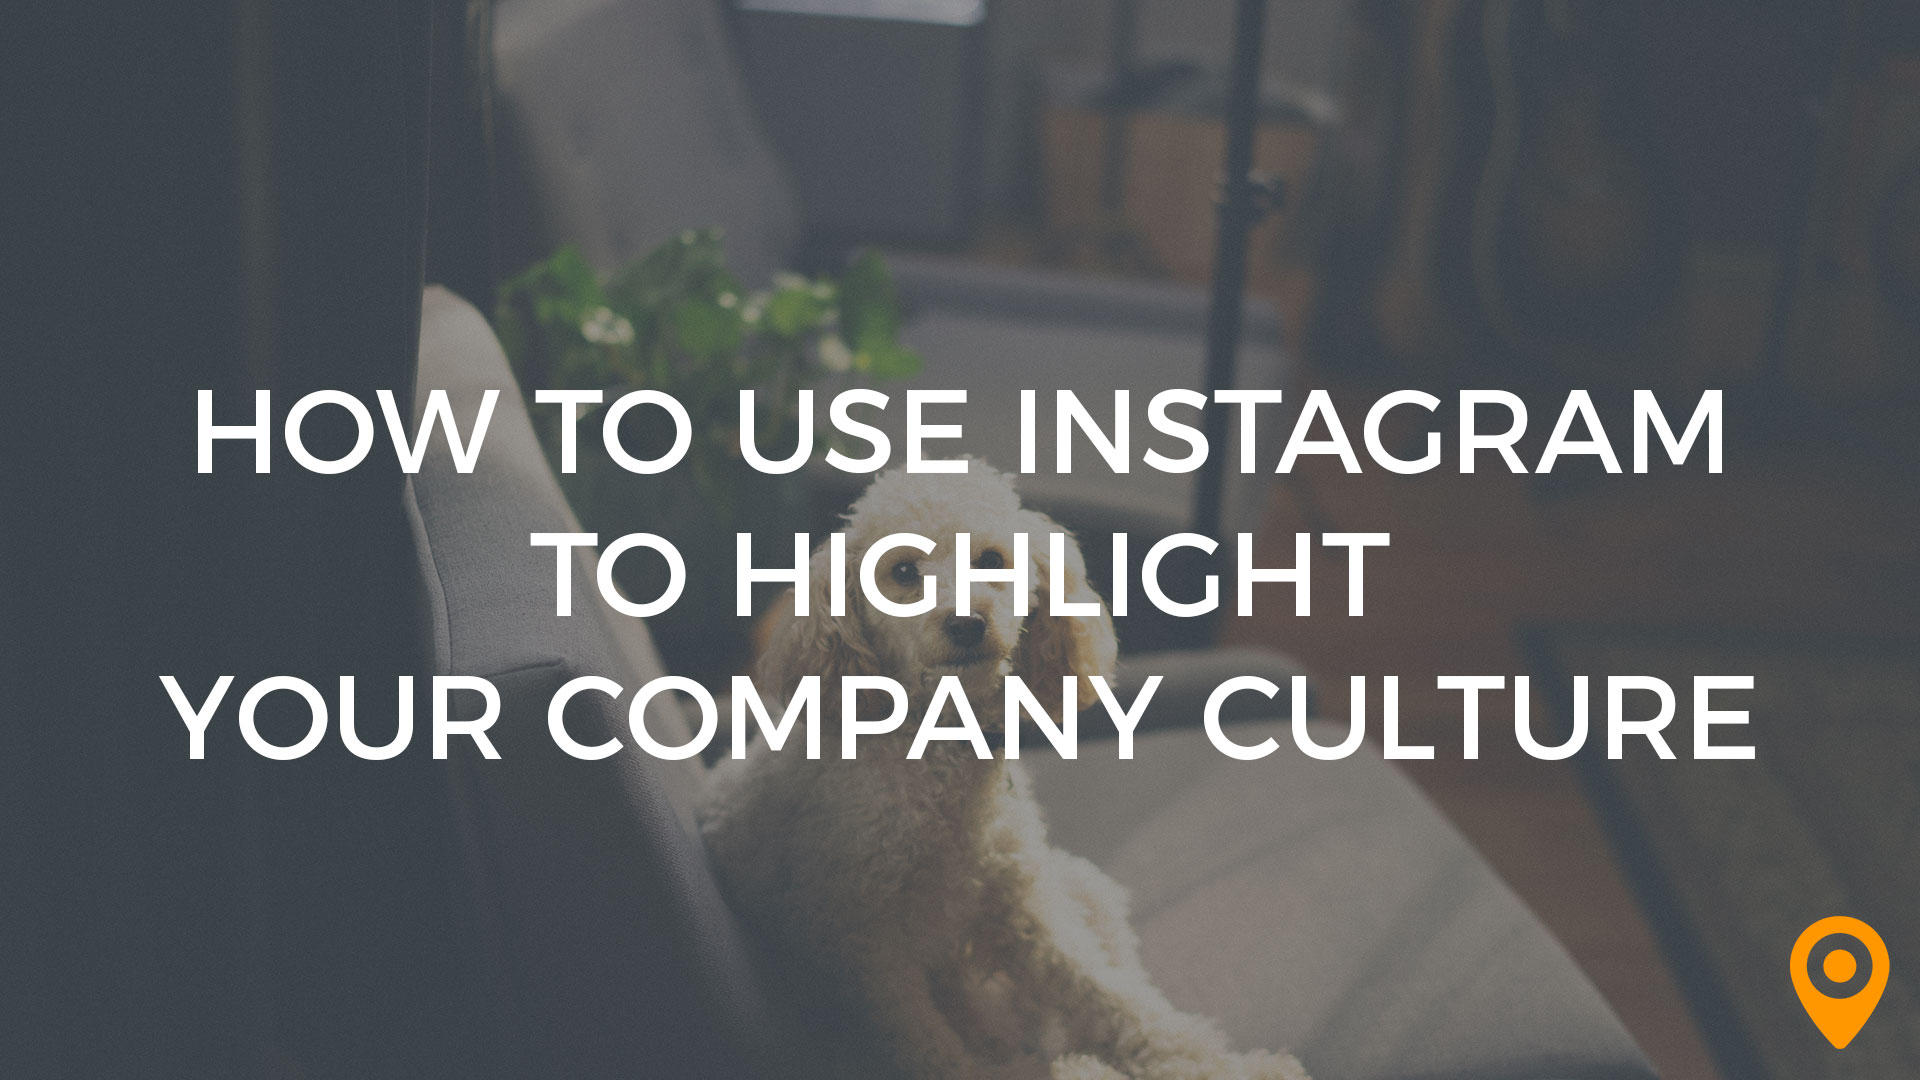 use instagram to highlight company culture